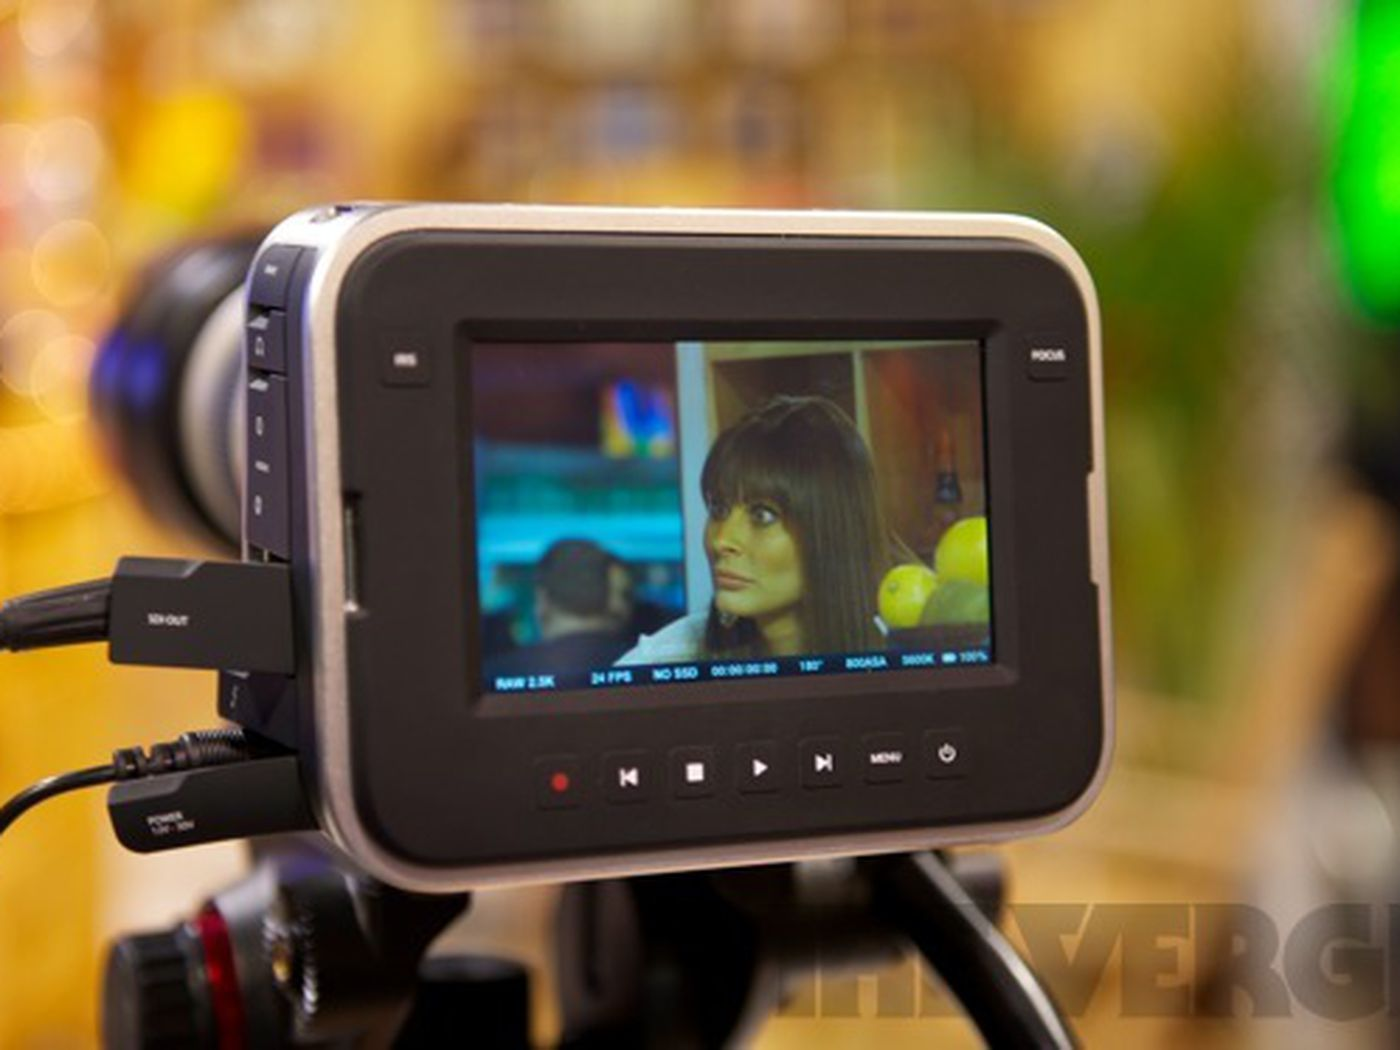 Blackmagic Cinema Camera Shoots 2 5k Video Costs 2 995 Hands On The Verge